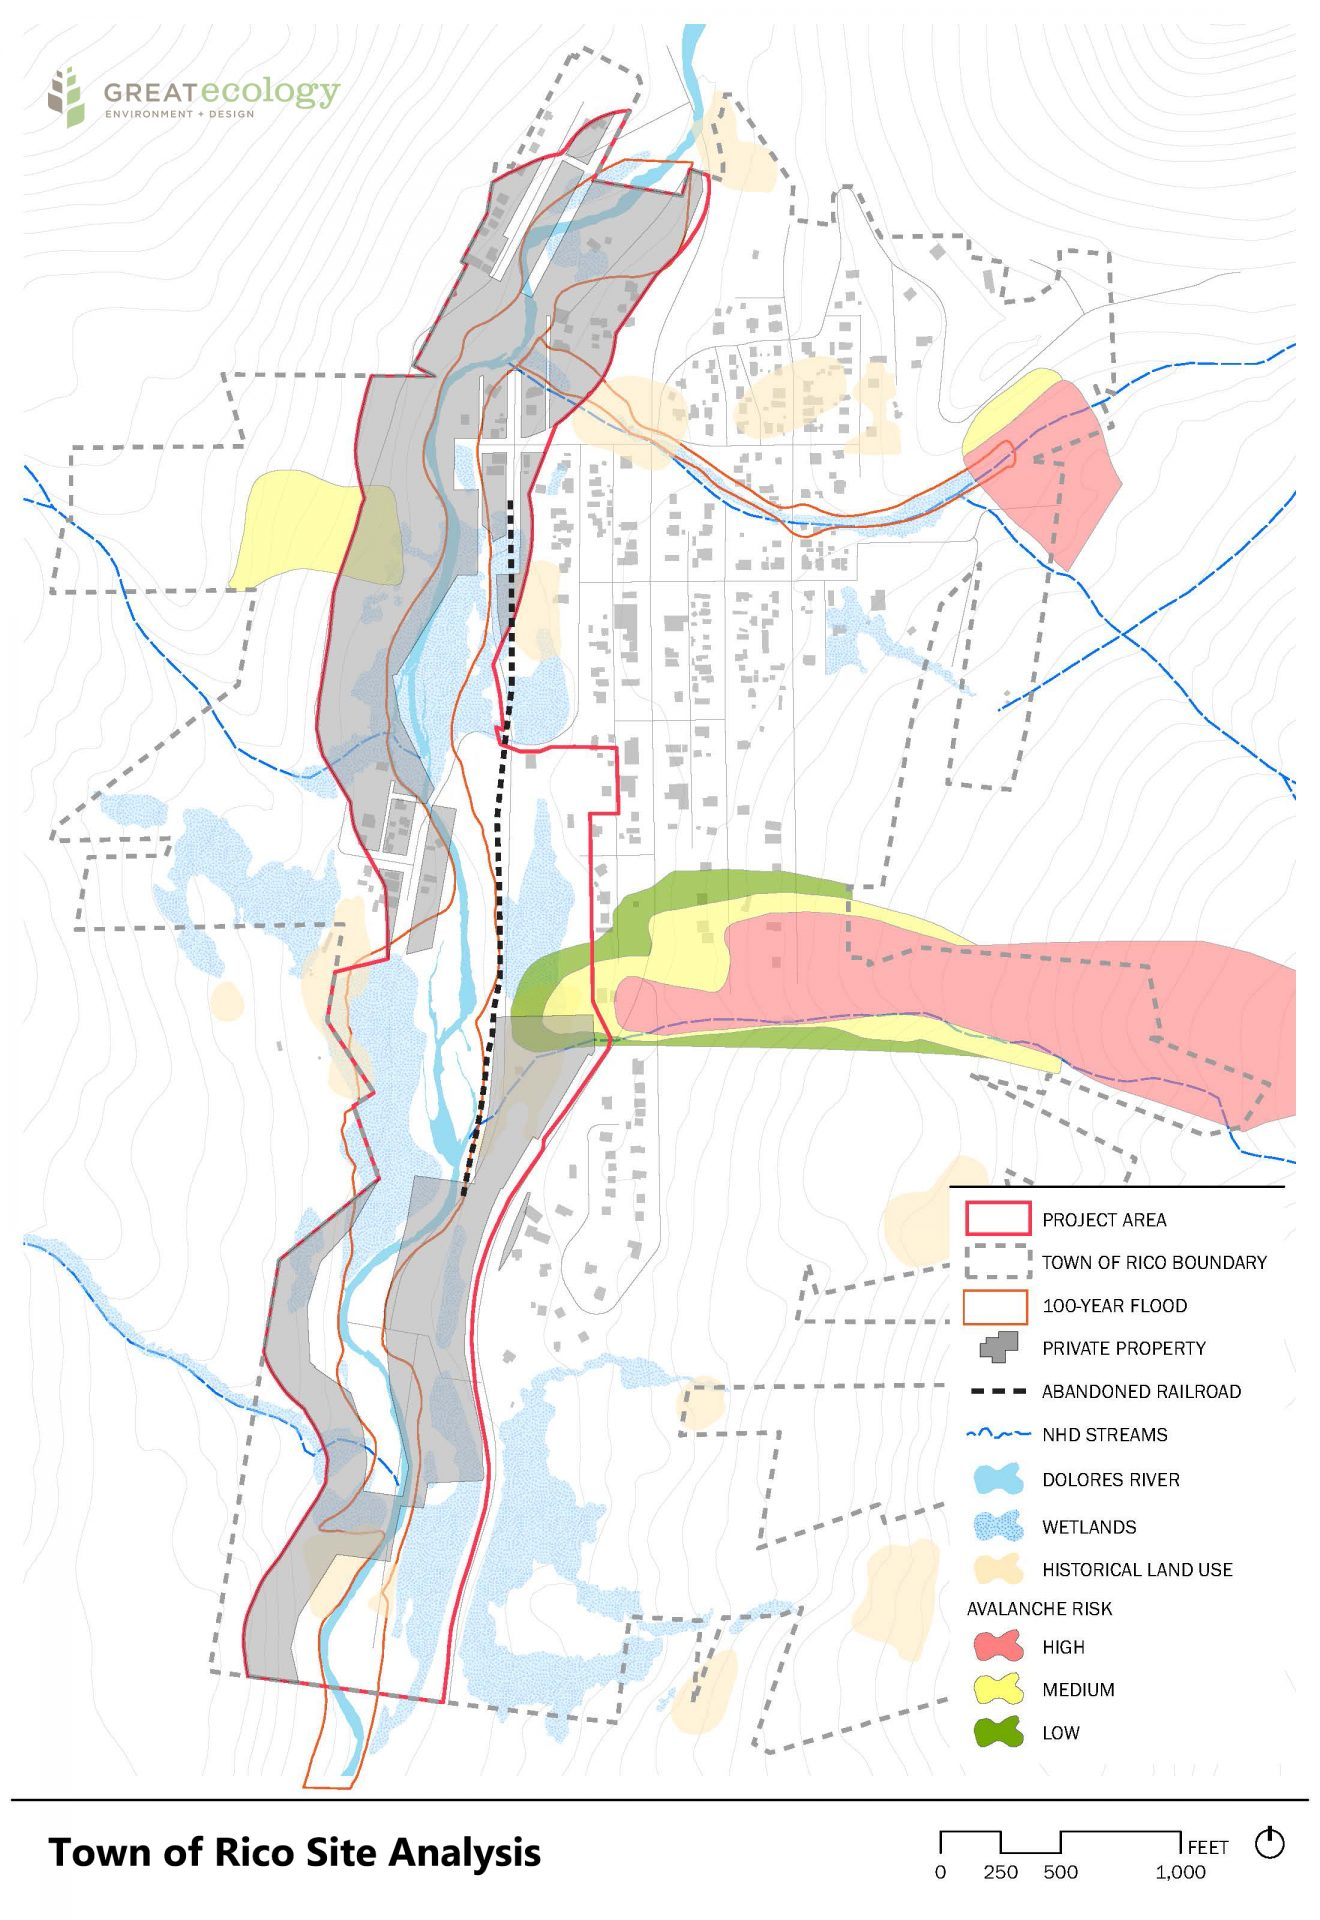 Town of Rico Site Analysis Map